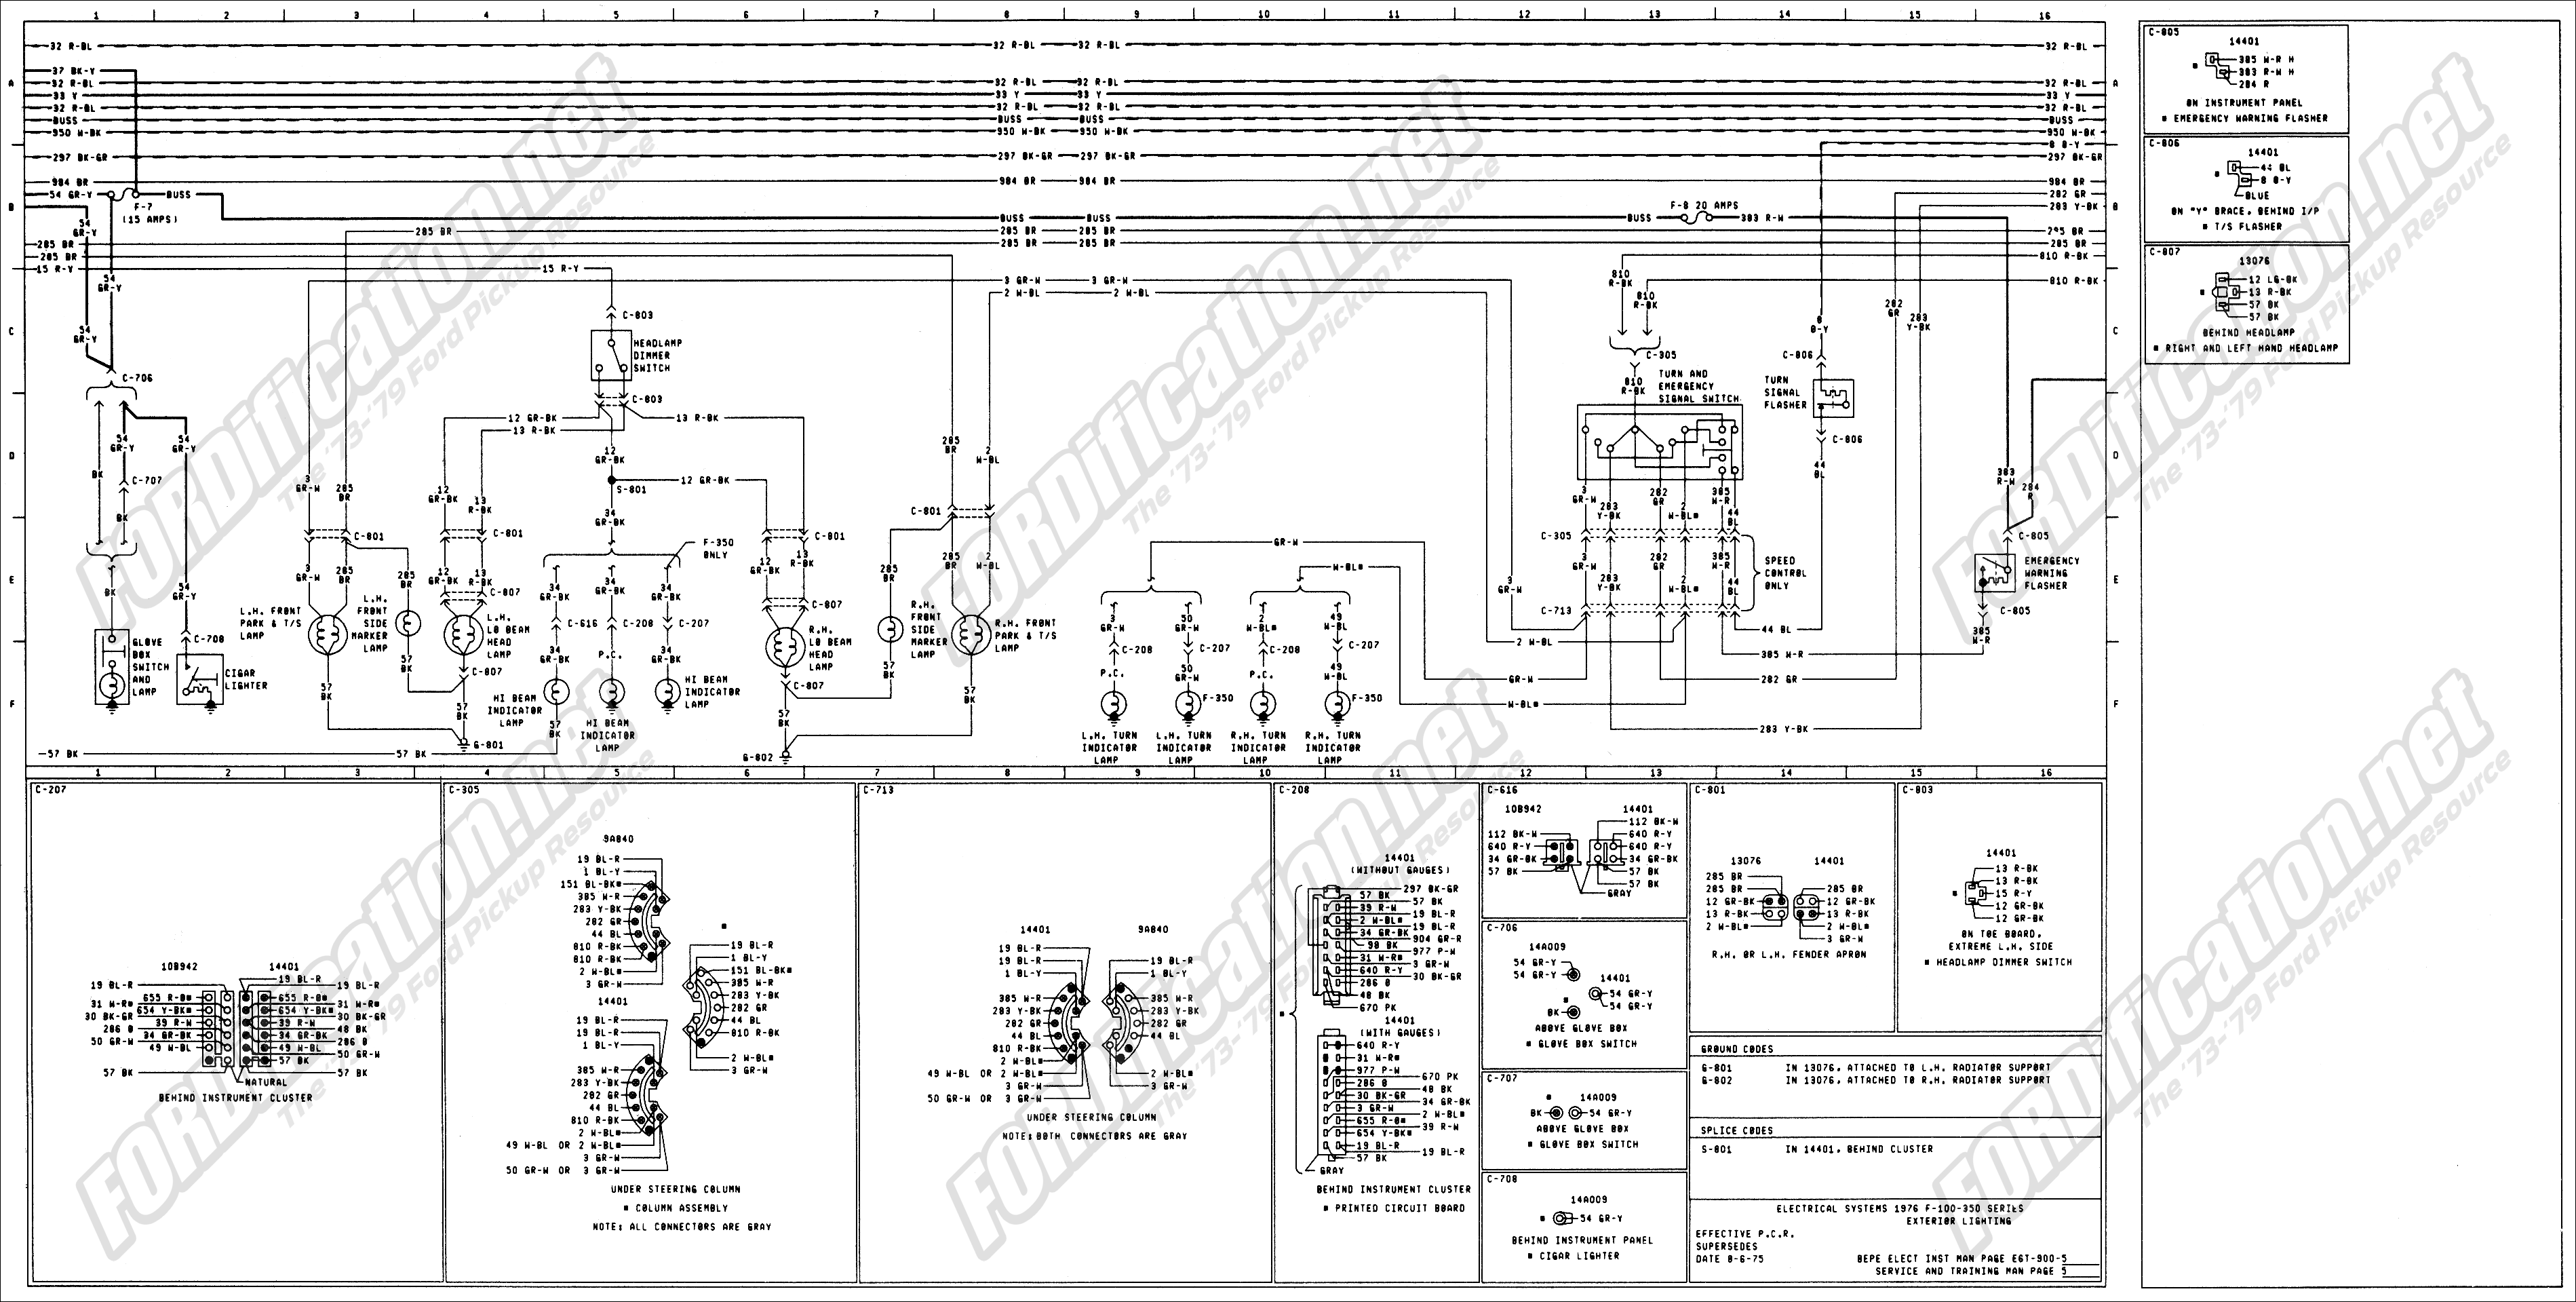 ford truck wiring diagram 1968 ford f100 wiring diagram 1968 image wiring changed column in 1968 f100 help ford truck